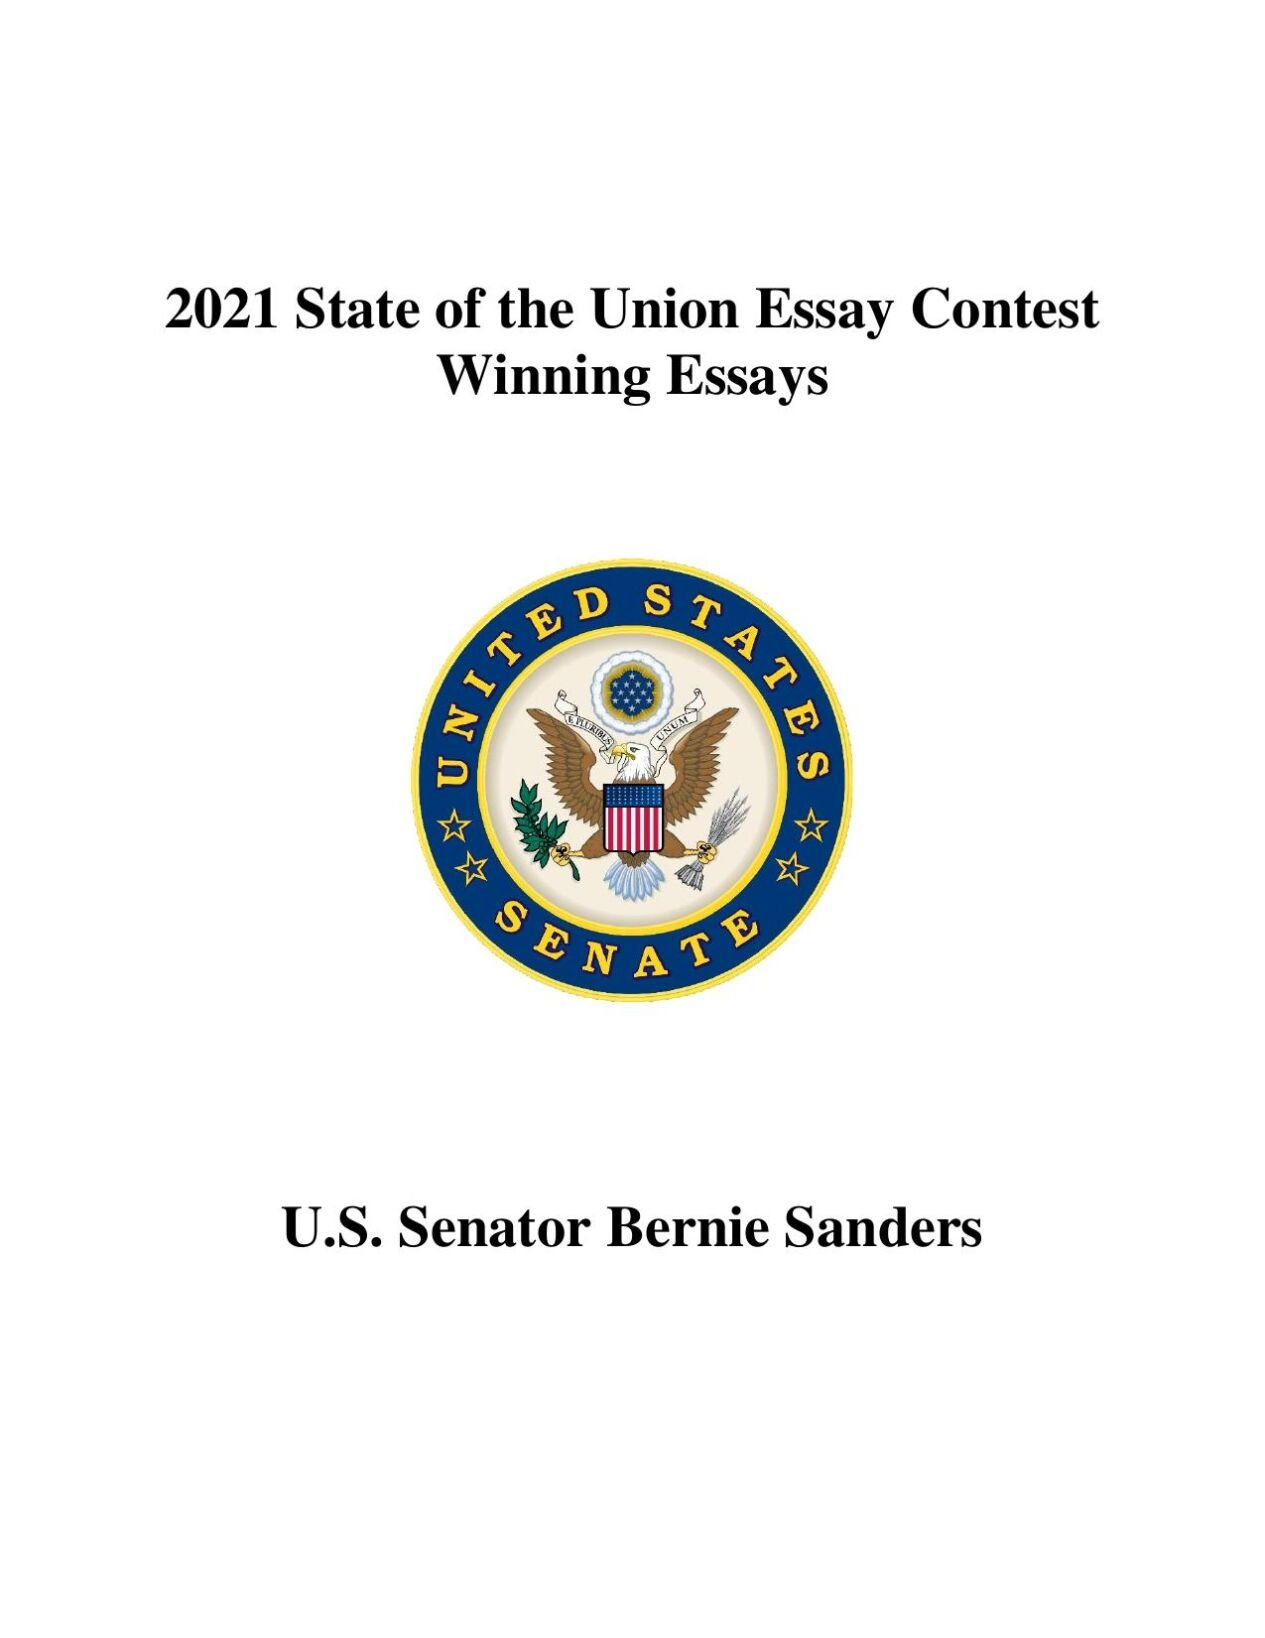 State of the Union high school essays